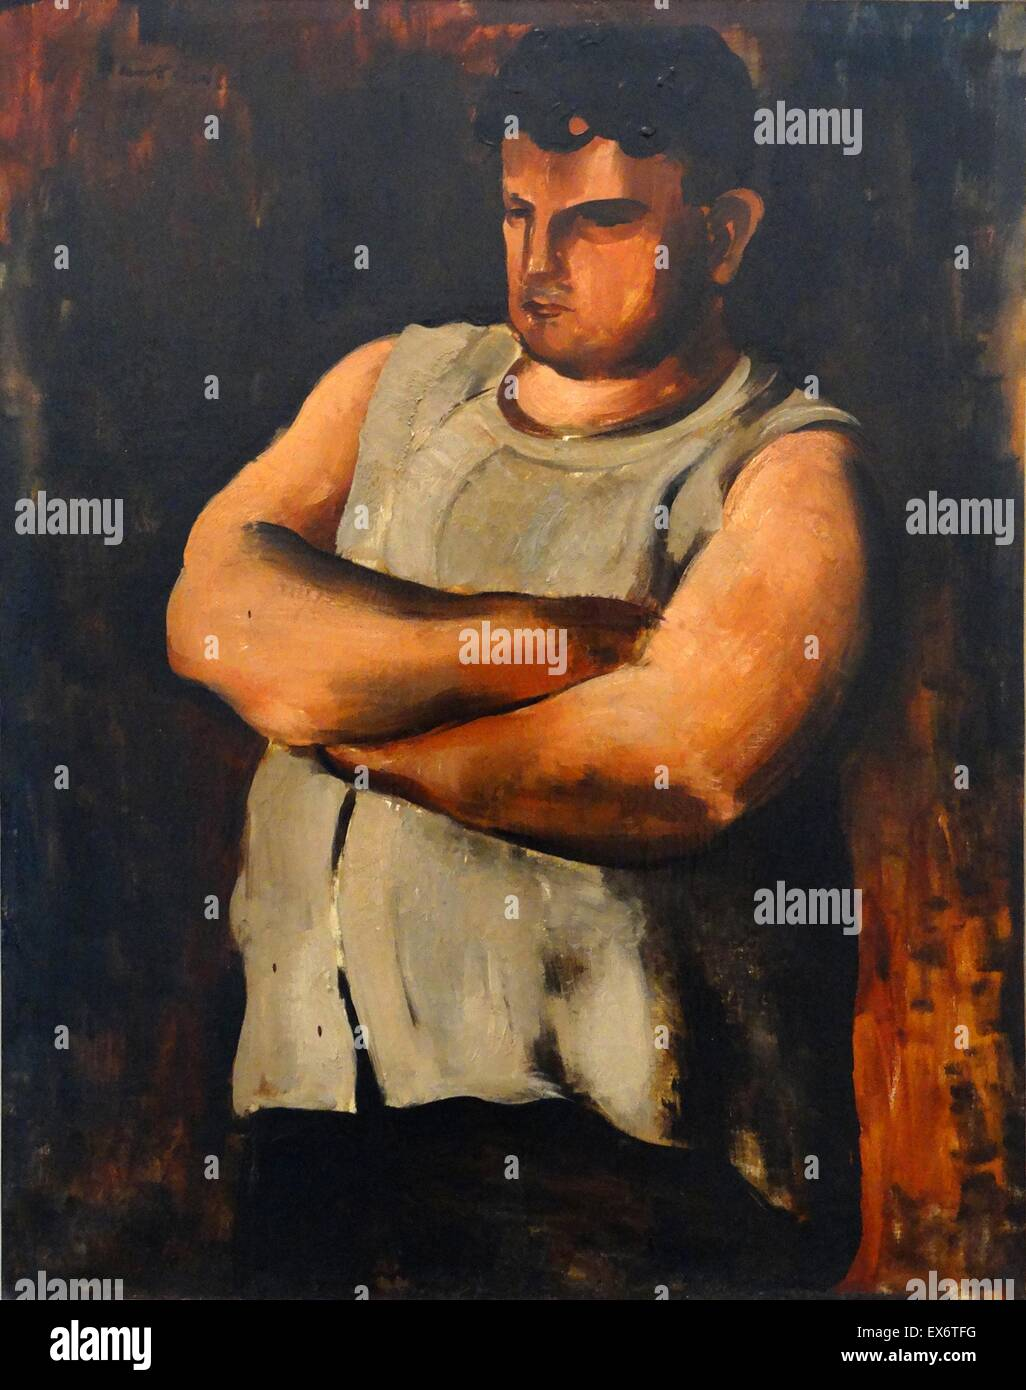 Portrait de Marcel Castel L'Hercule by Jean Fautrier (1898-1964). Oil on canvas, 1925. Fautrier was a French - Stock Image